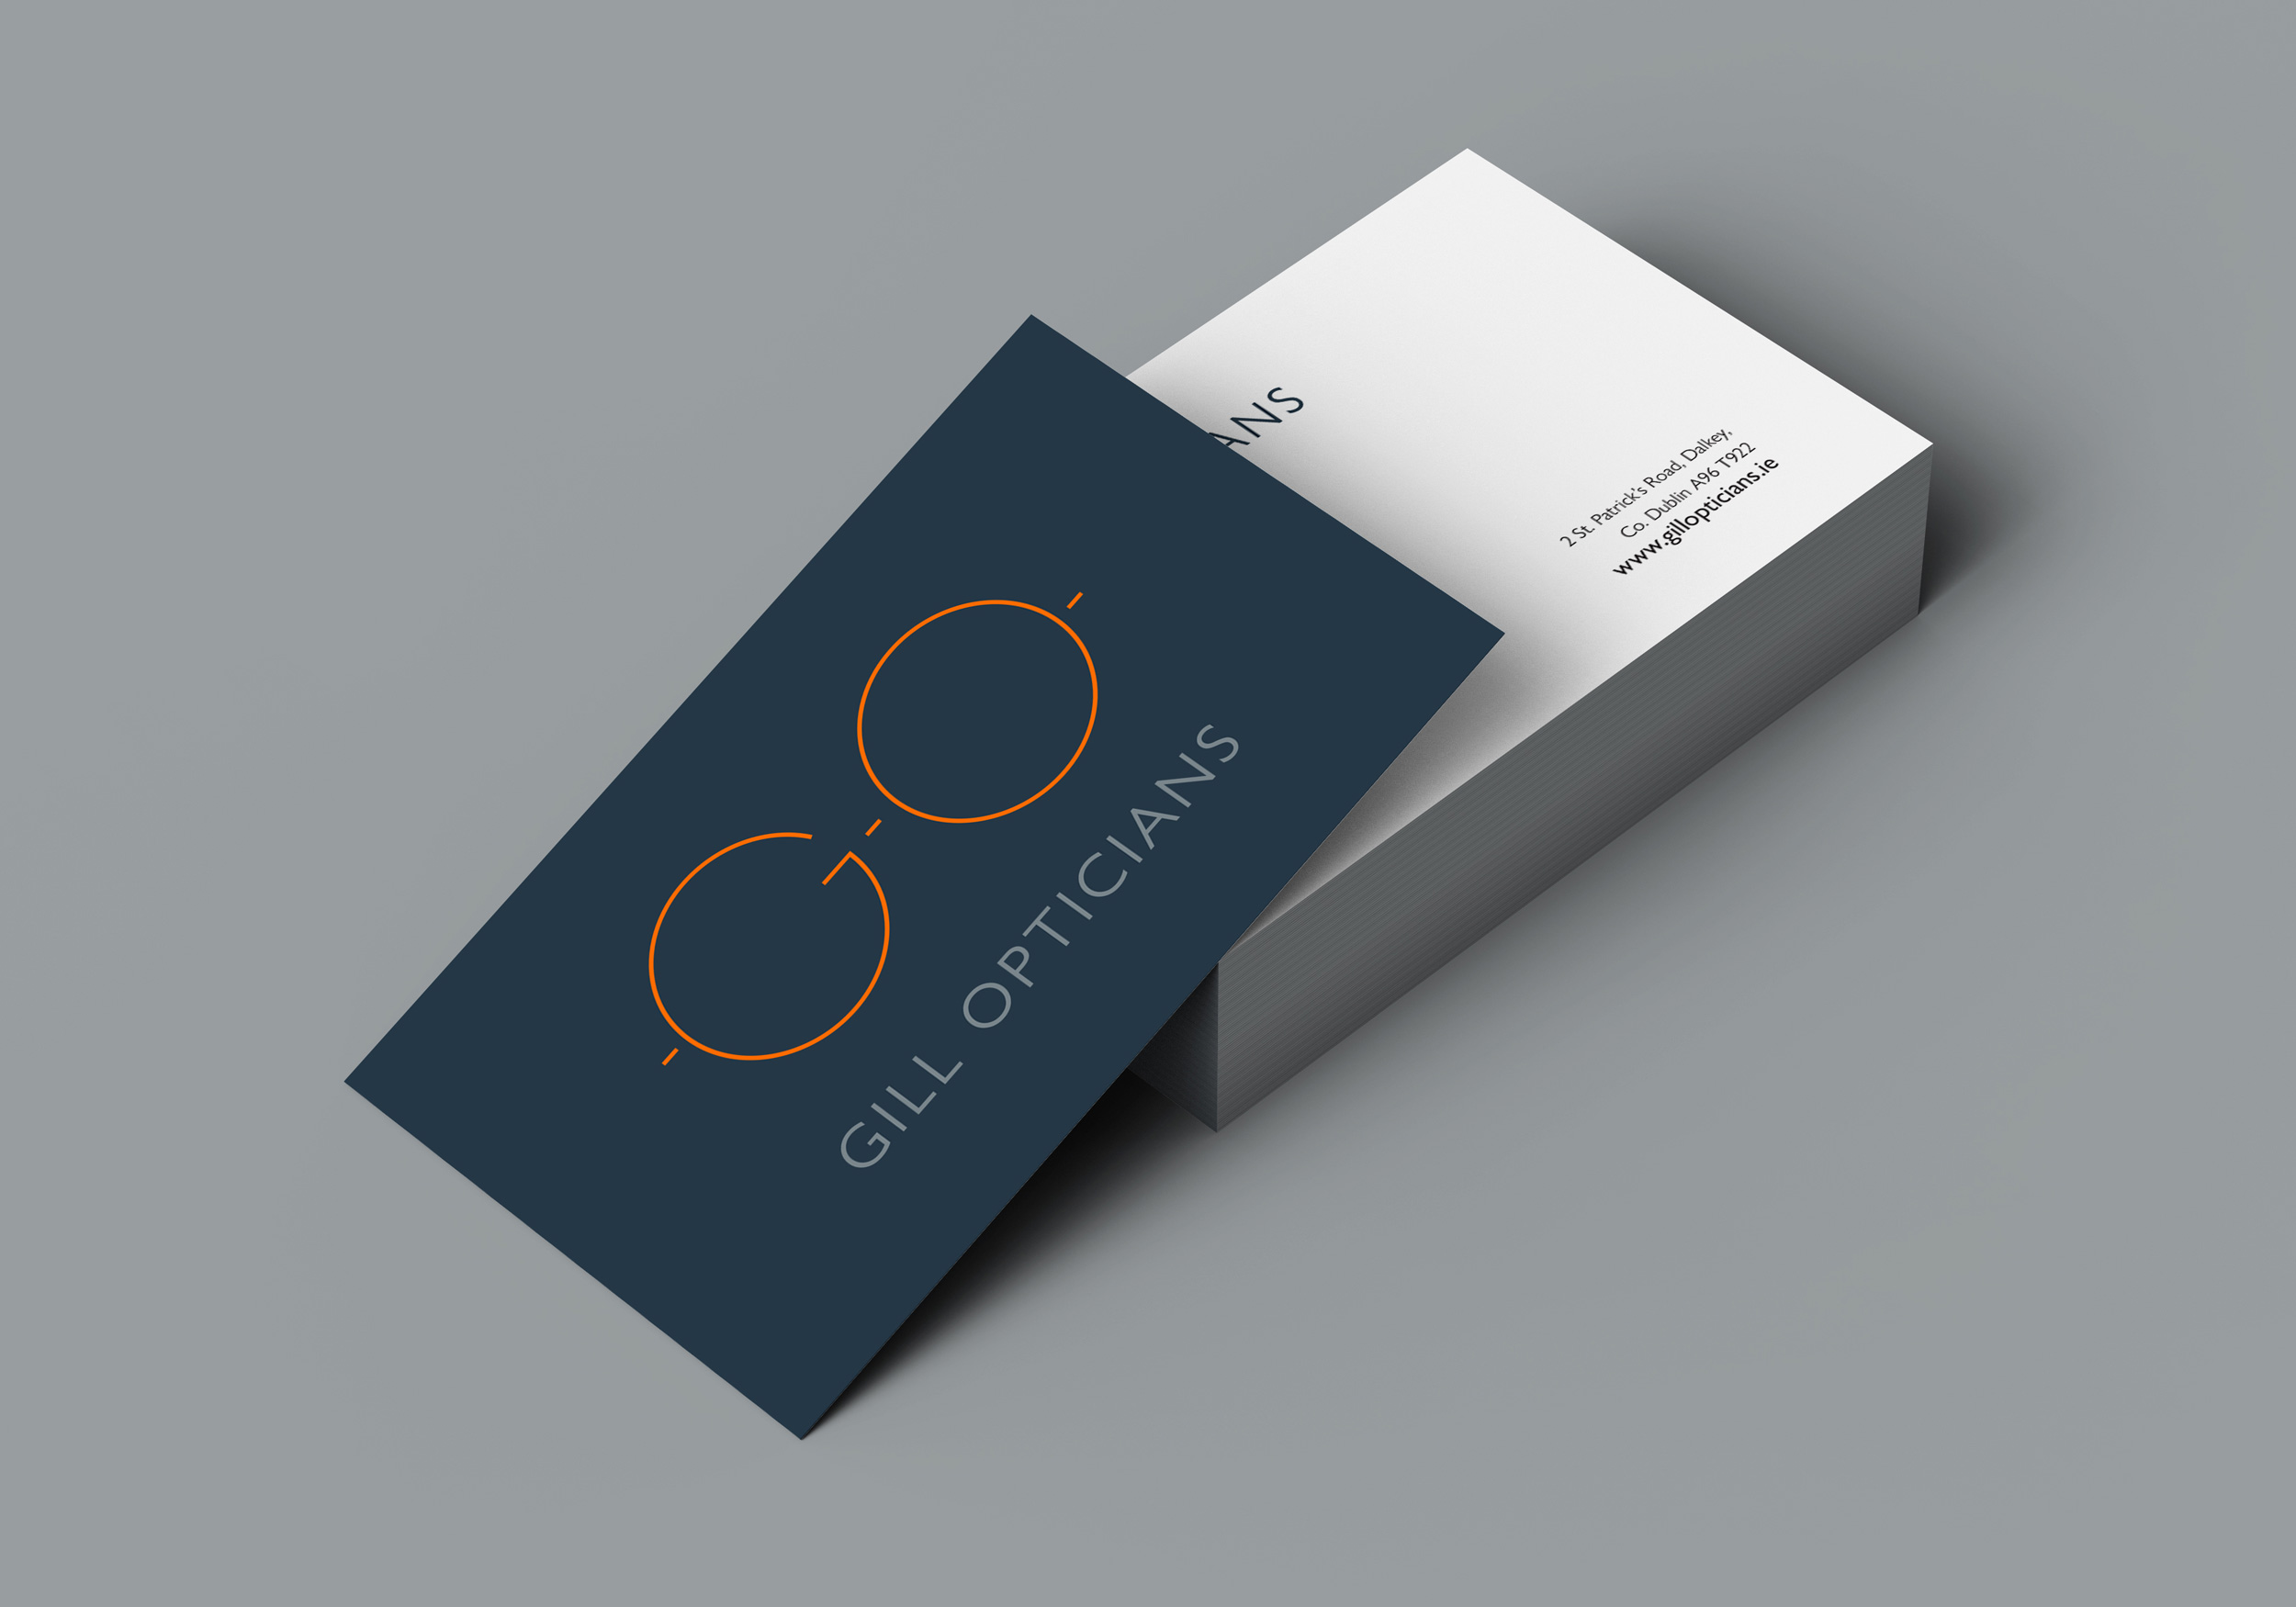 Cover image: Gill Opticians Branding